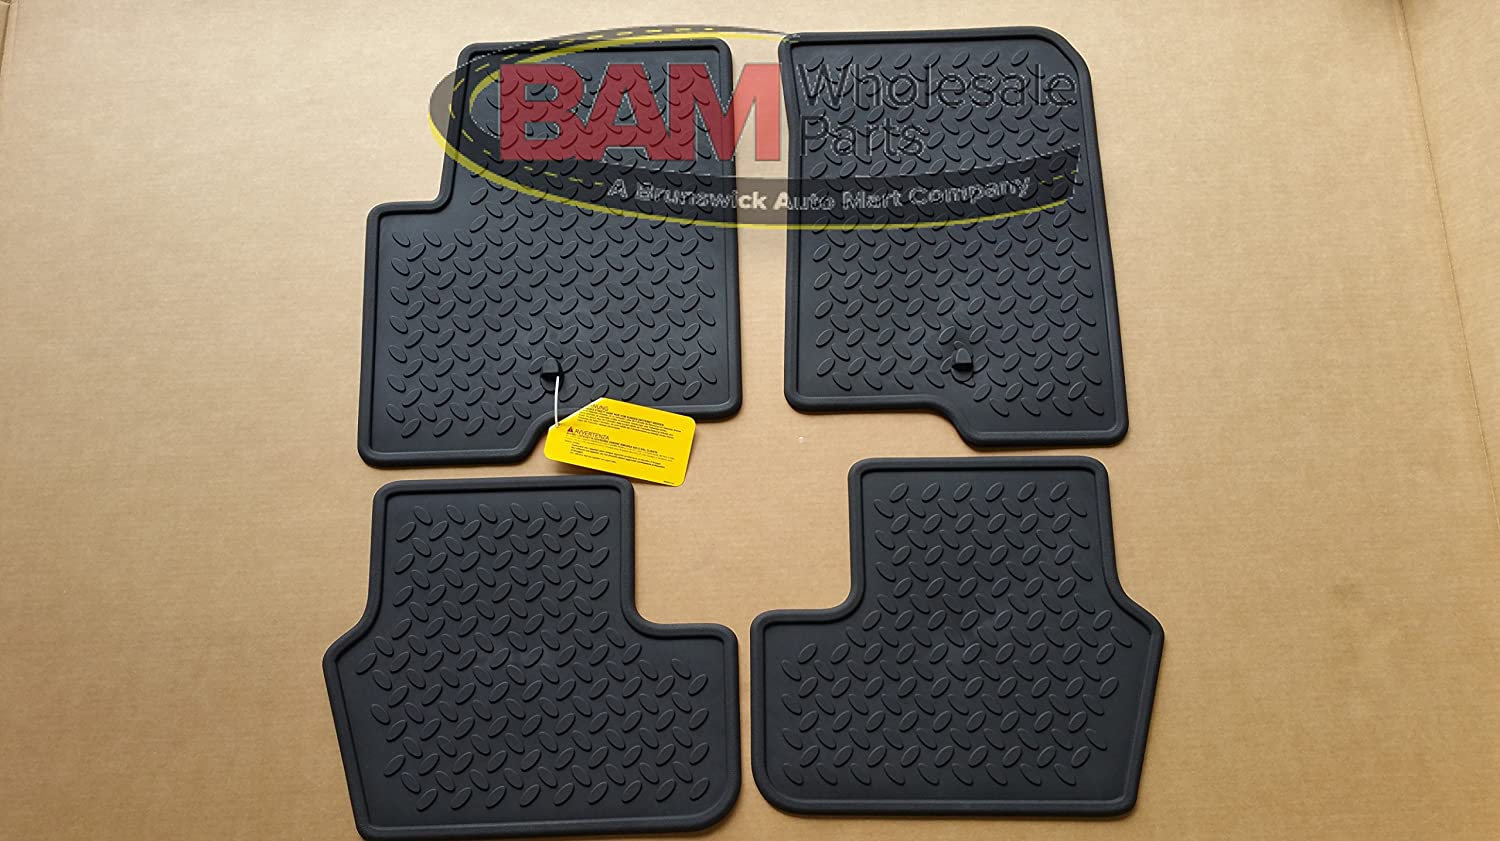 Floor mats jeep compass - Amazon Com 2016 Jeep Patriot Compass Slush Mats Oem All Weather Floor Mats Mopar 82210598ac Automotive